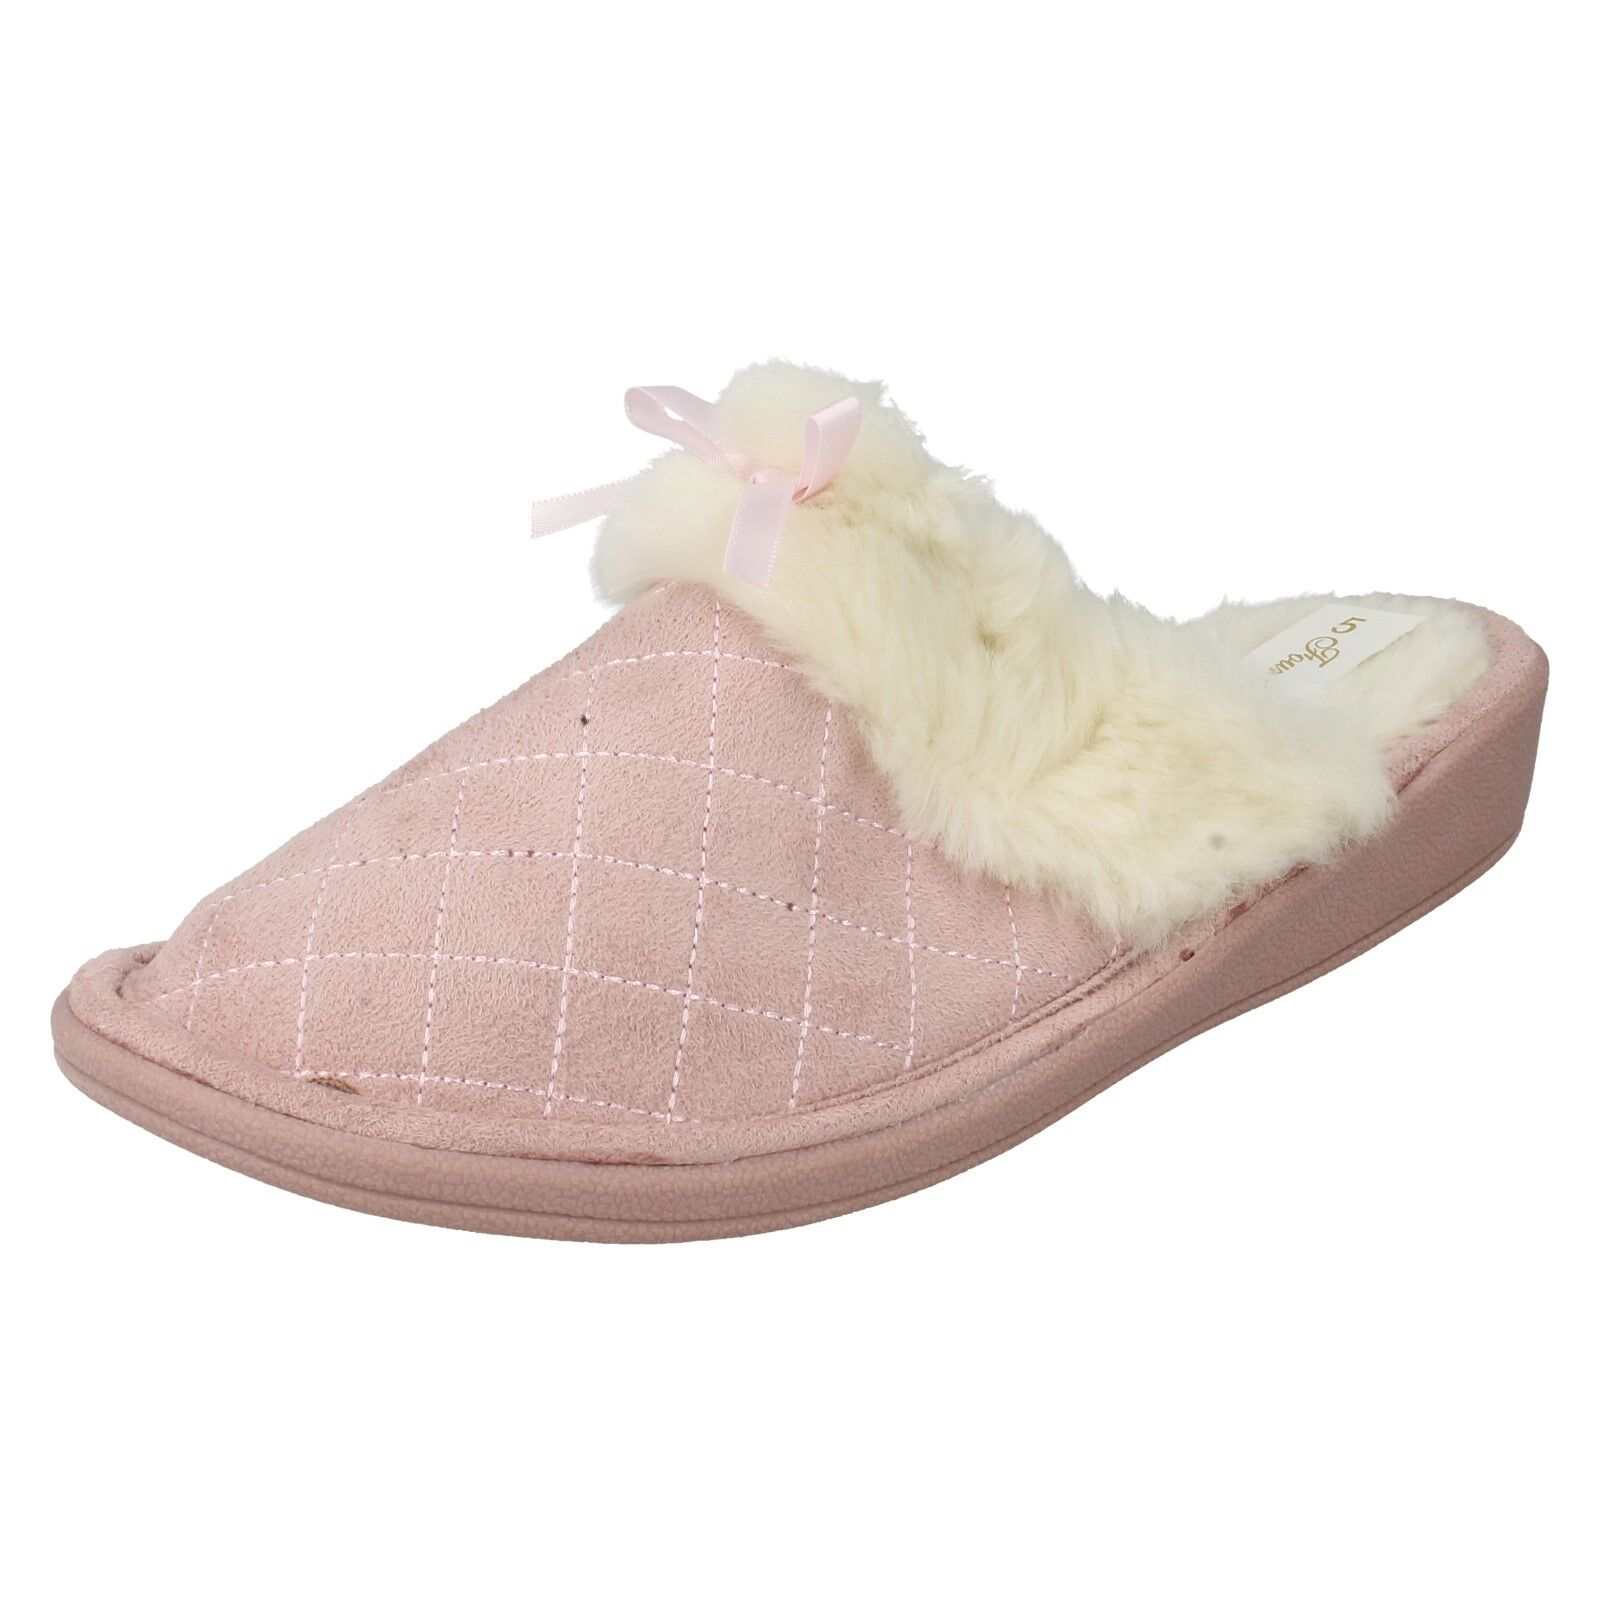 LADIES FOUR SEASONS F432 WARM SLIP ON MULES INDOOR FLUFFY SHOES BOW SLIPPERS